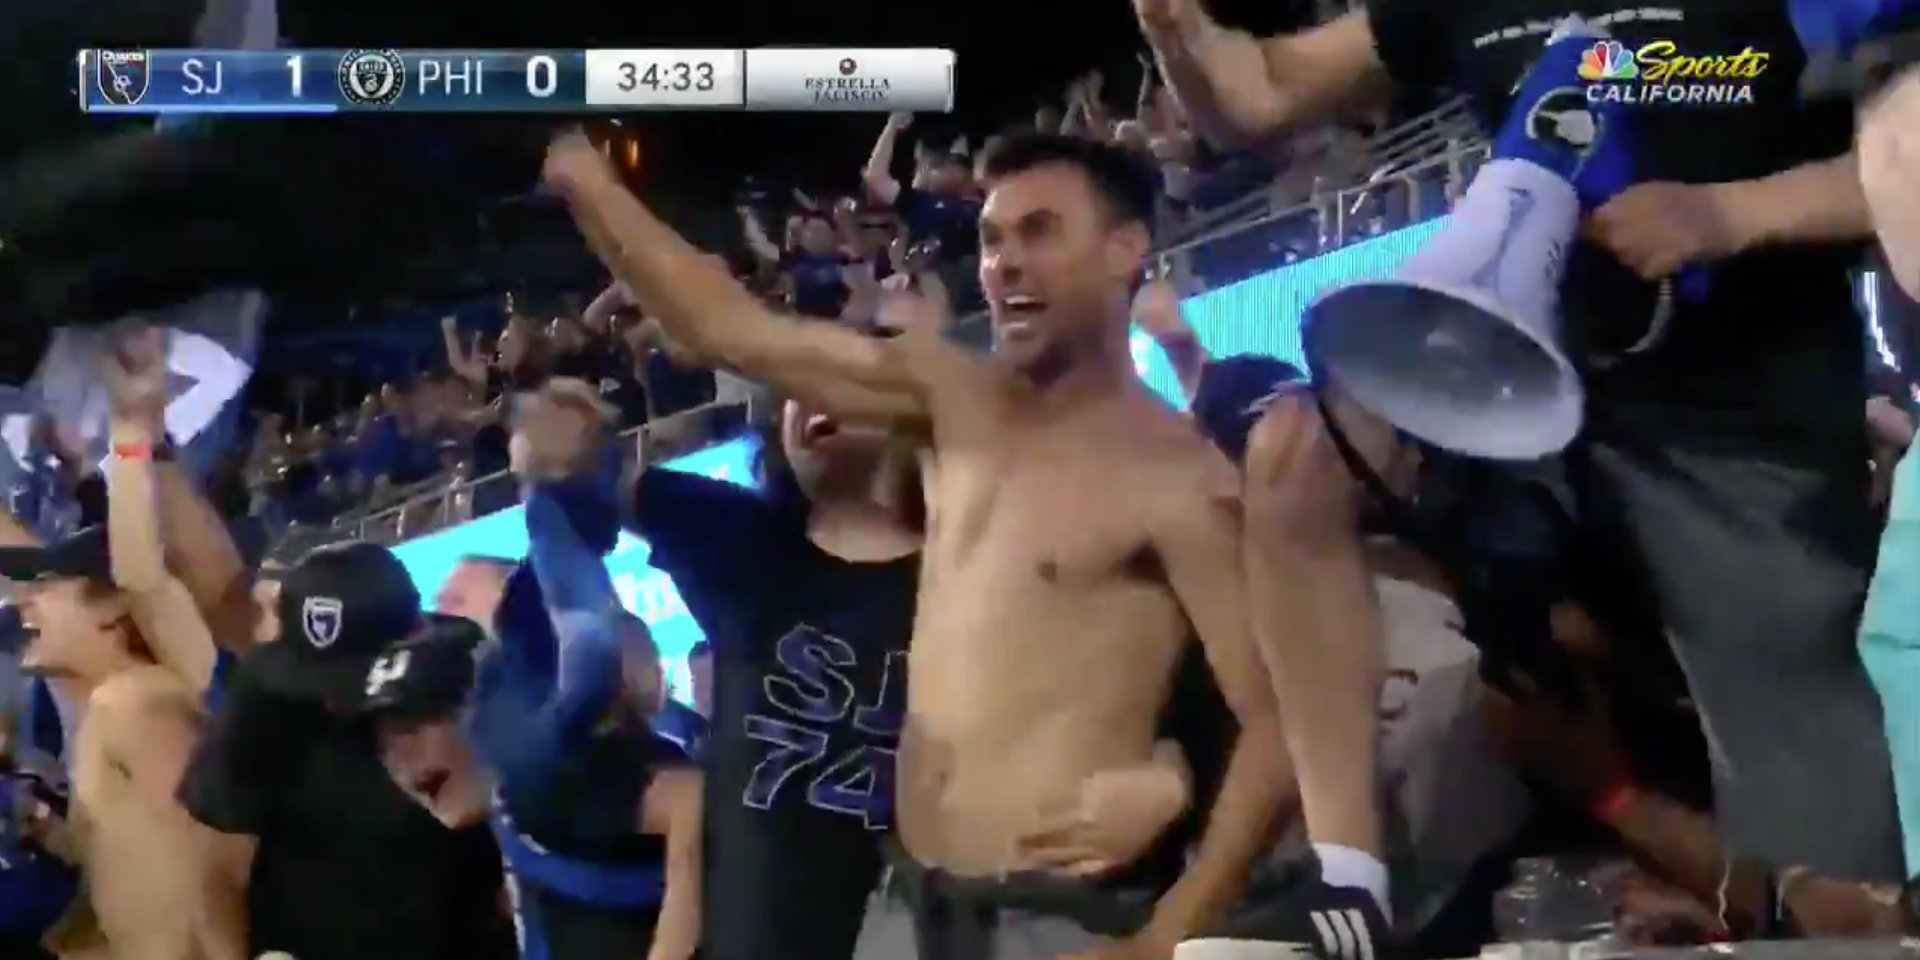 Chris Wondolowski served his one-game MLS suspension shirtless in the stands with a mob of fans